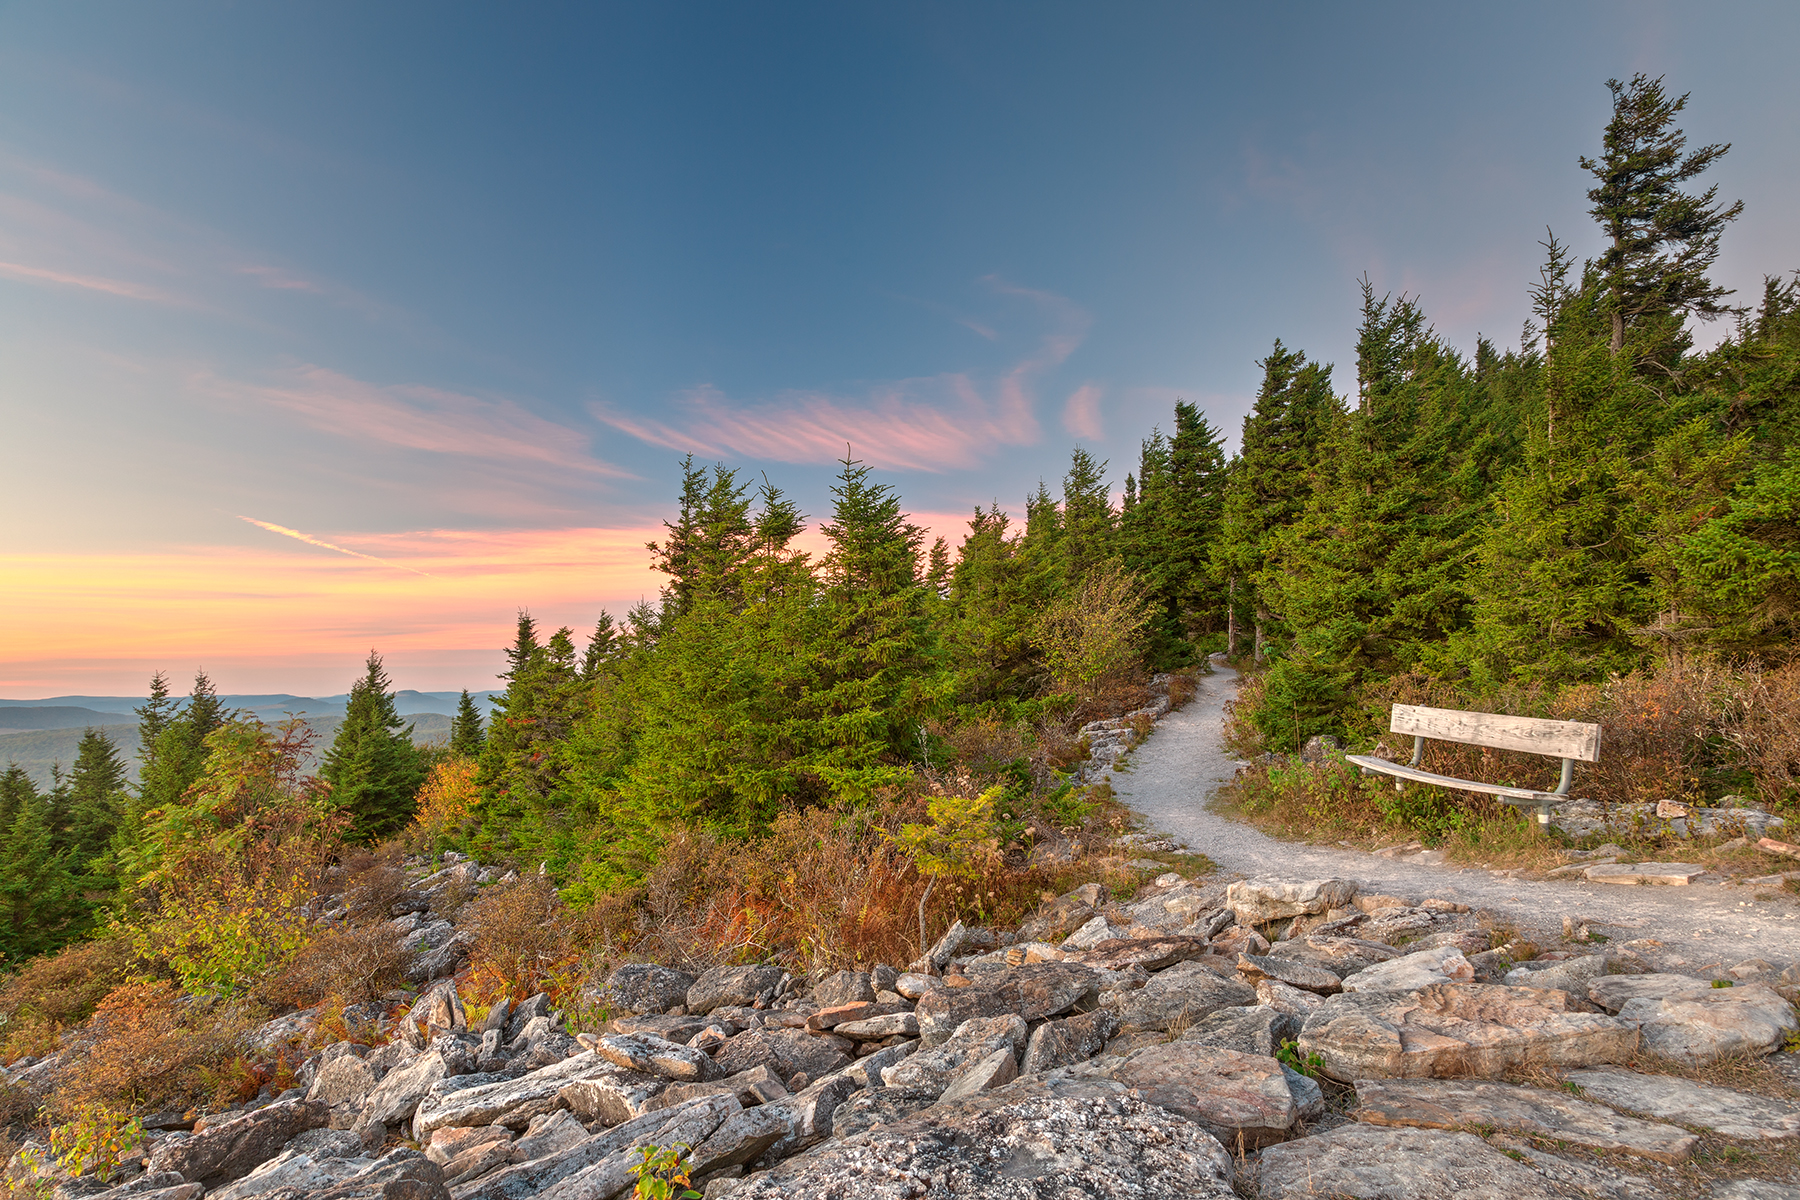 Spruce Knob Twilight Trail - HDR, Raw, Seat, Scenic, Scenery, HQ Photo